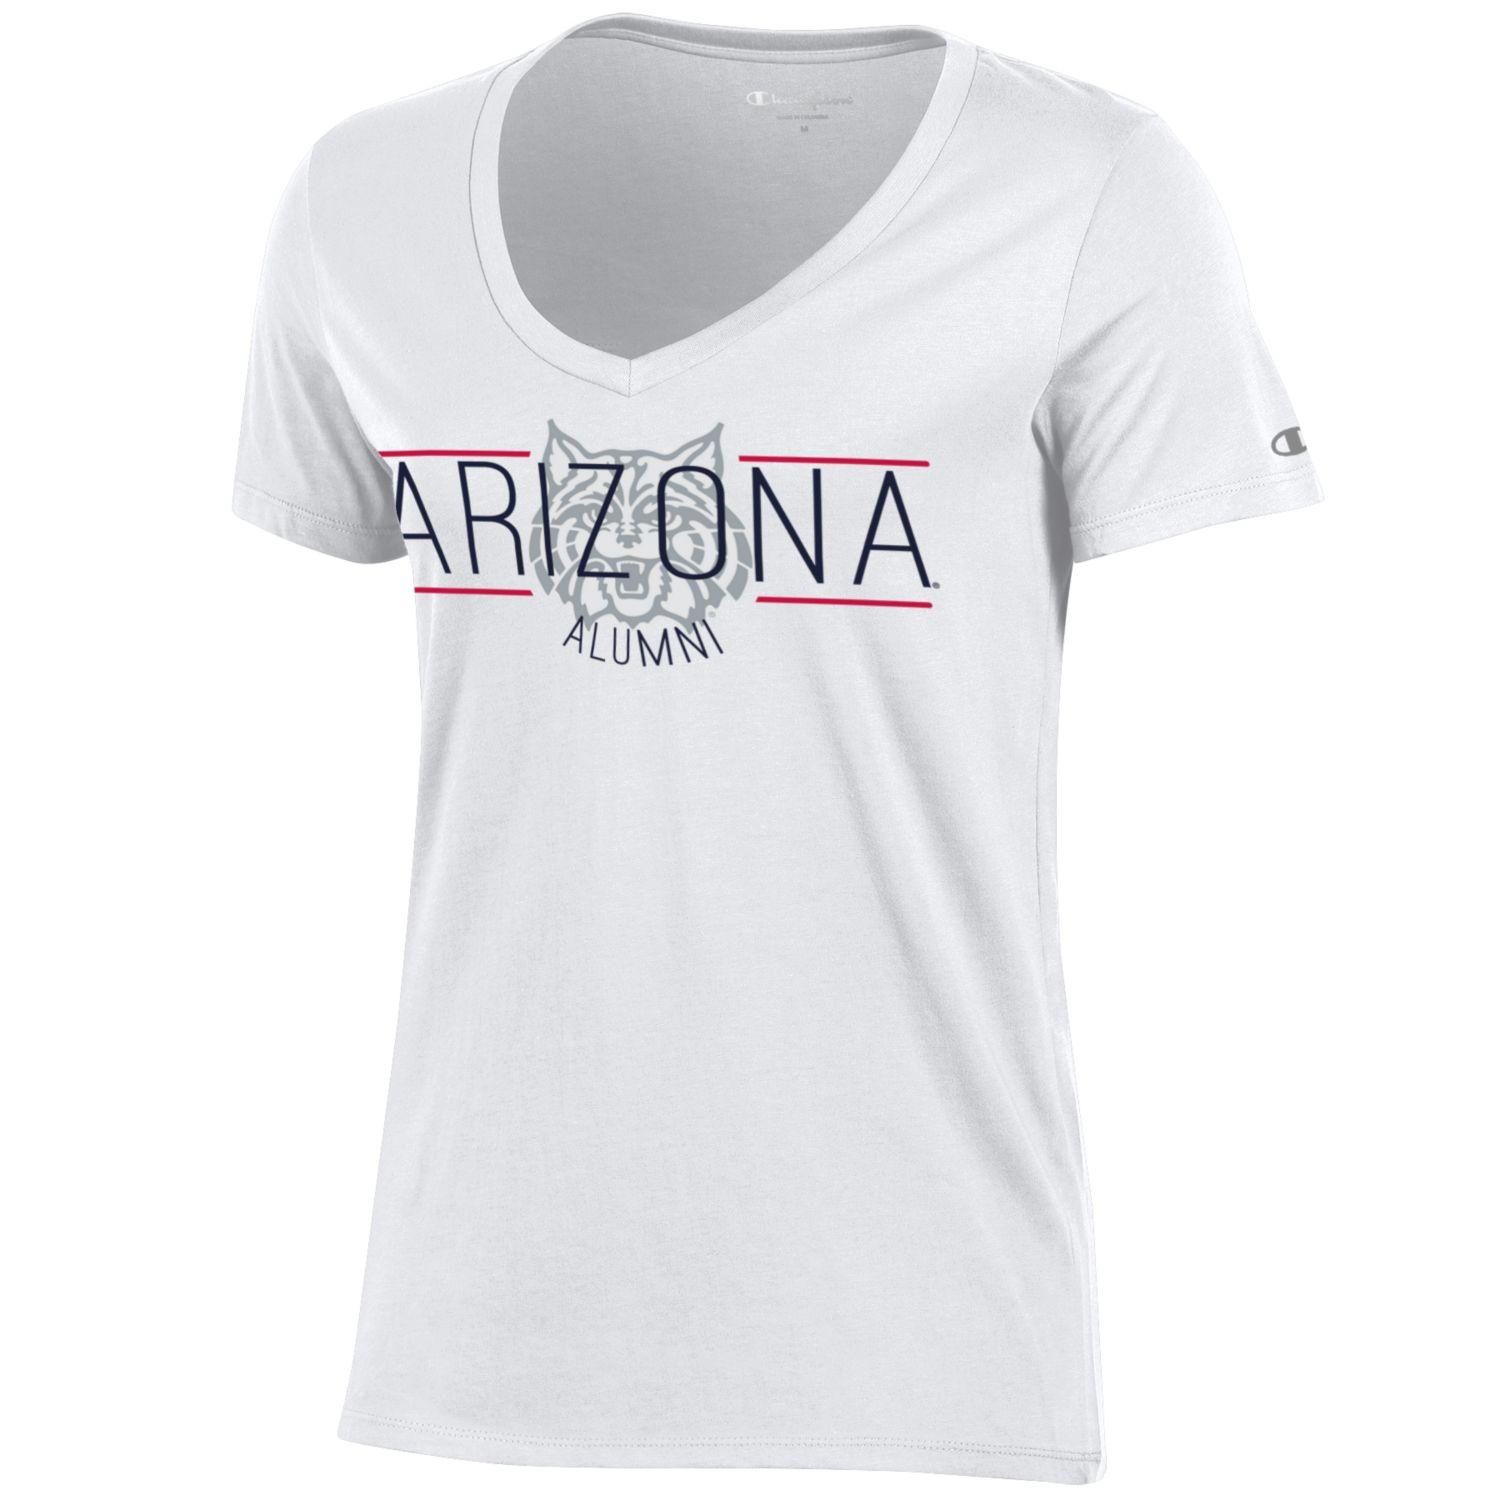 Image For Champion: Arizona Alumni University V-Neck Tee - White